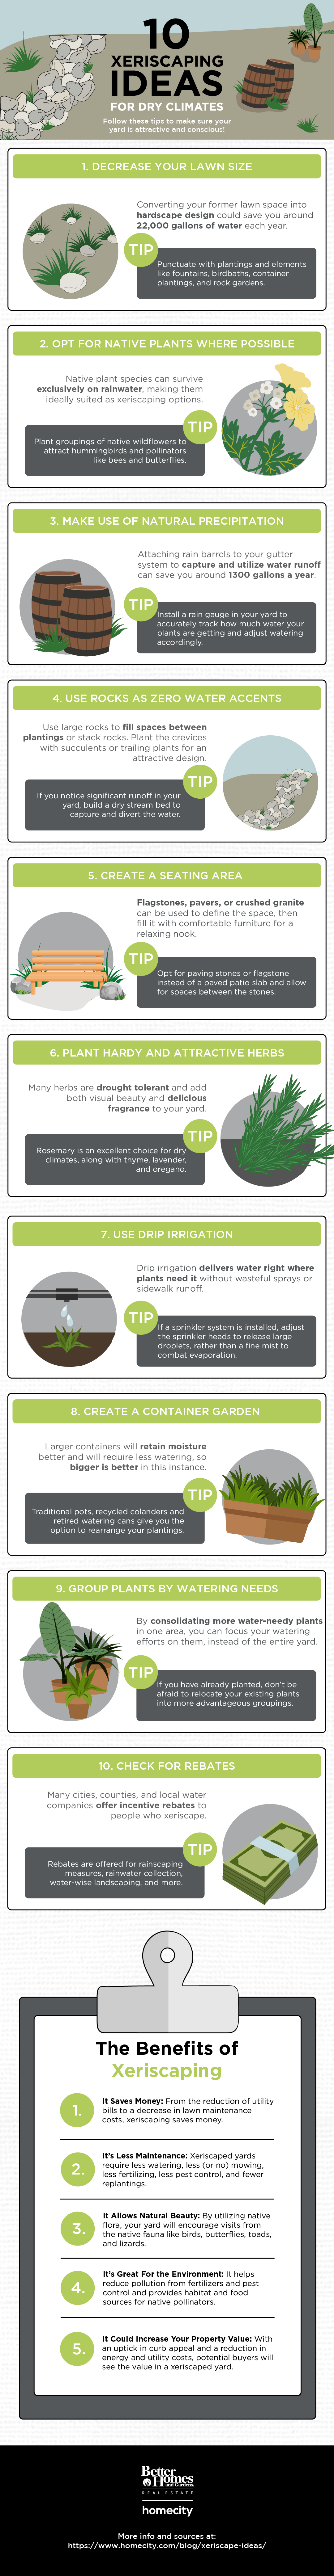 10 Xeriscaping Ideas for Dry Climates [Visual]   ecogreenlove